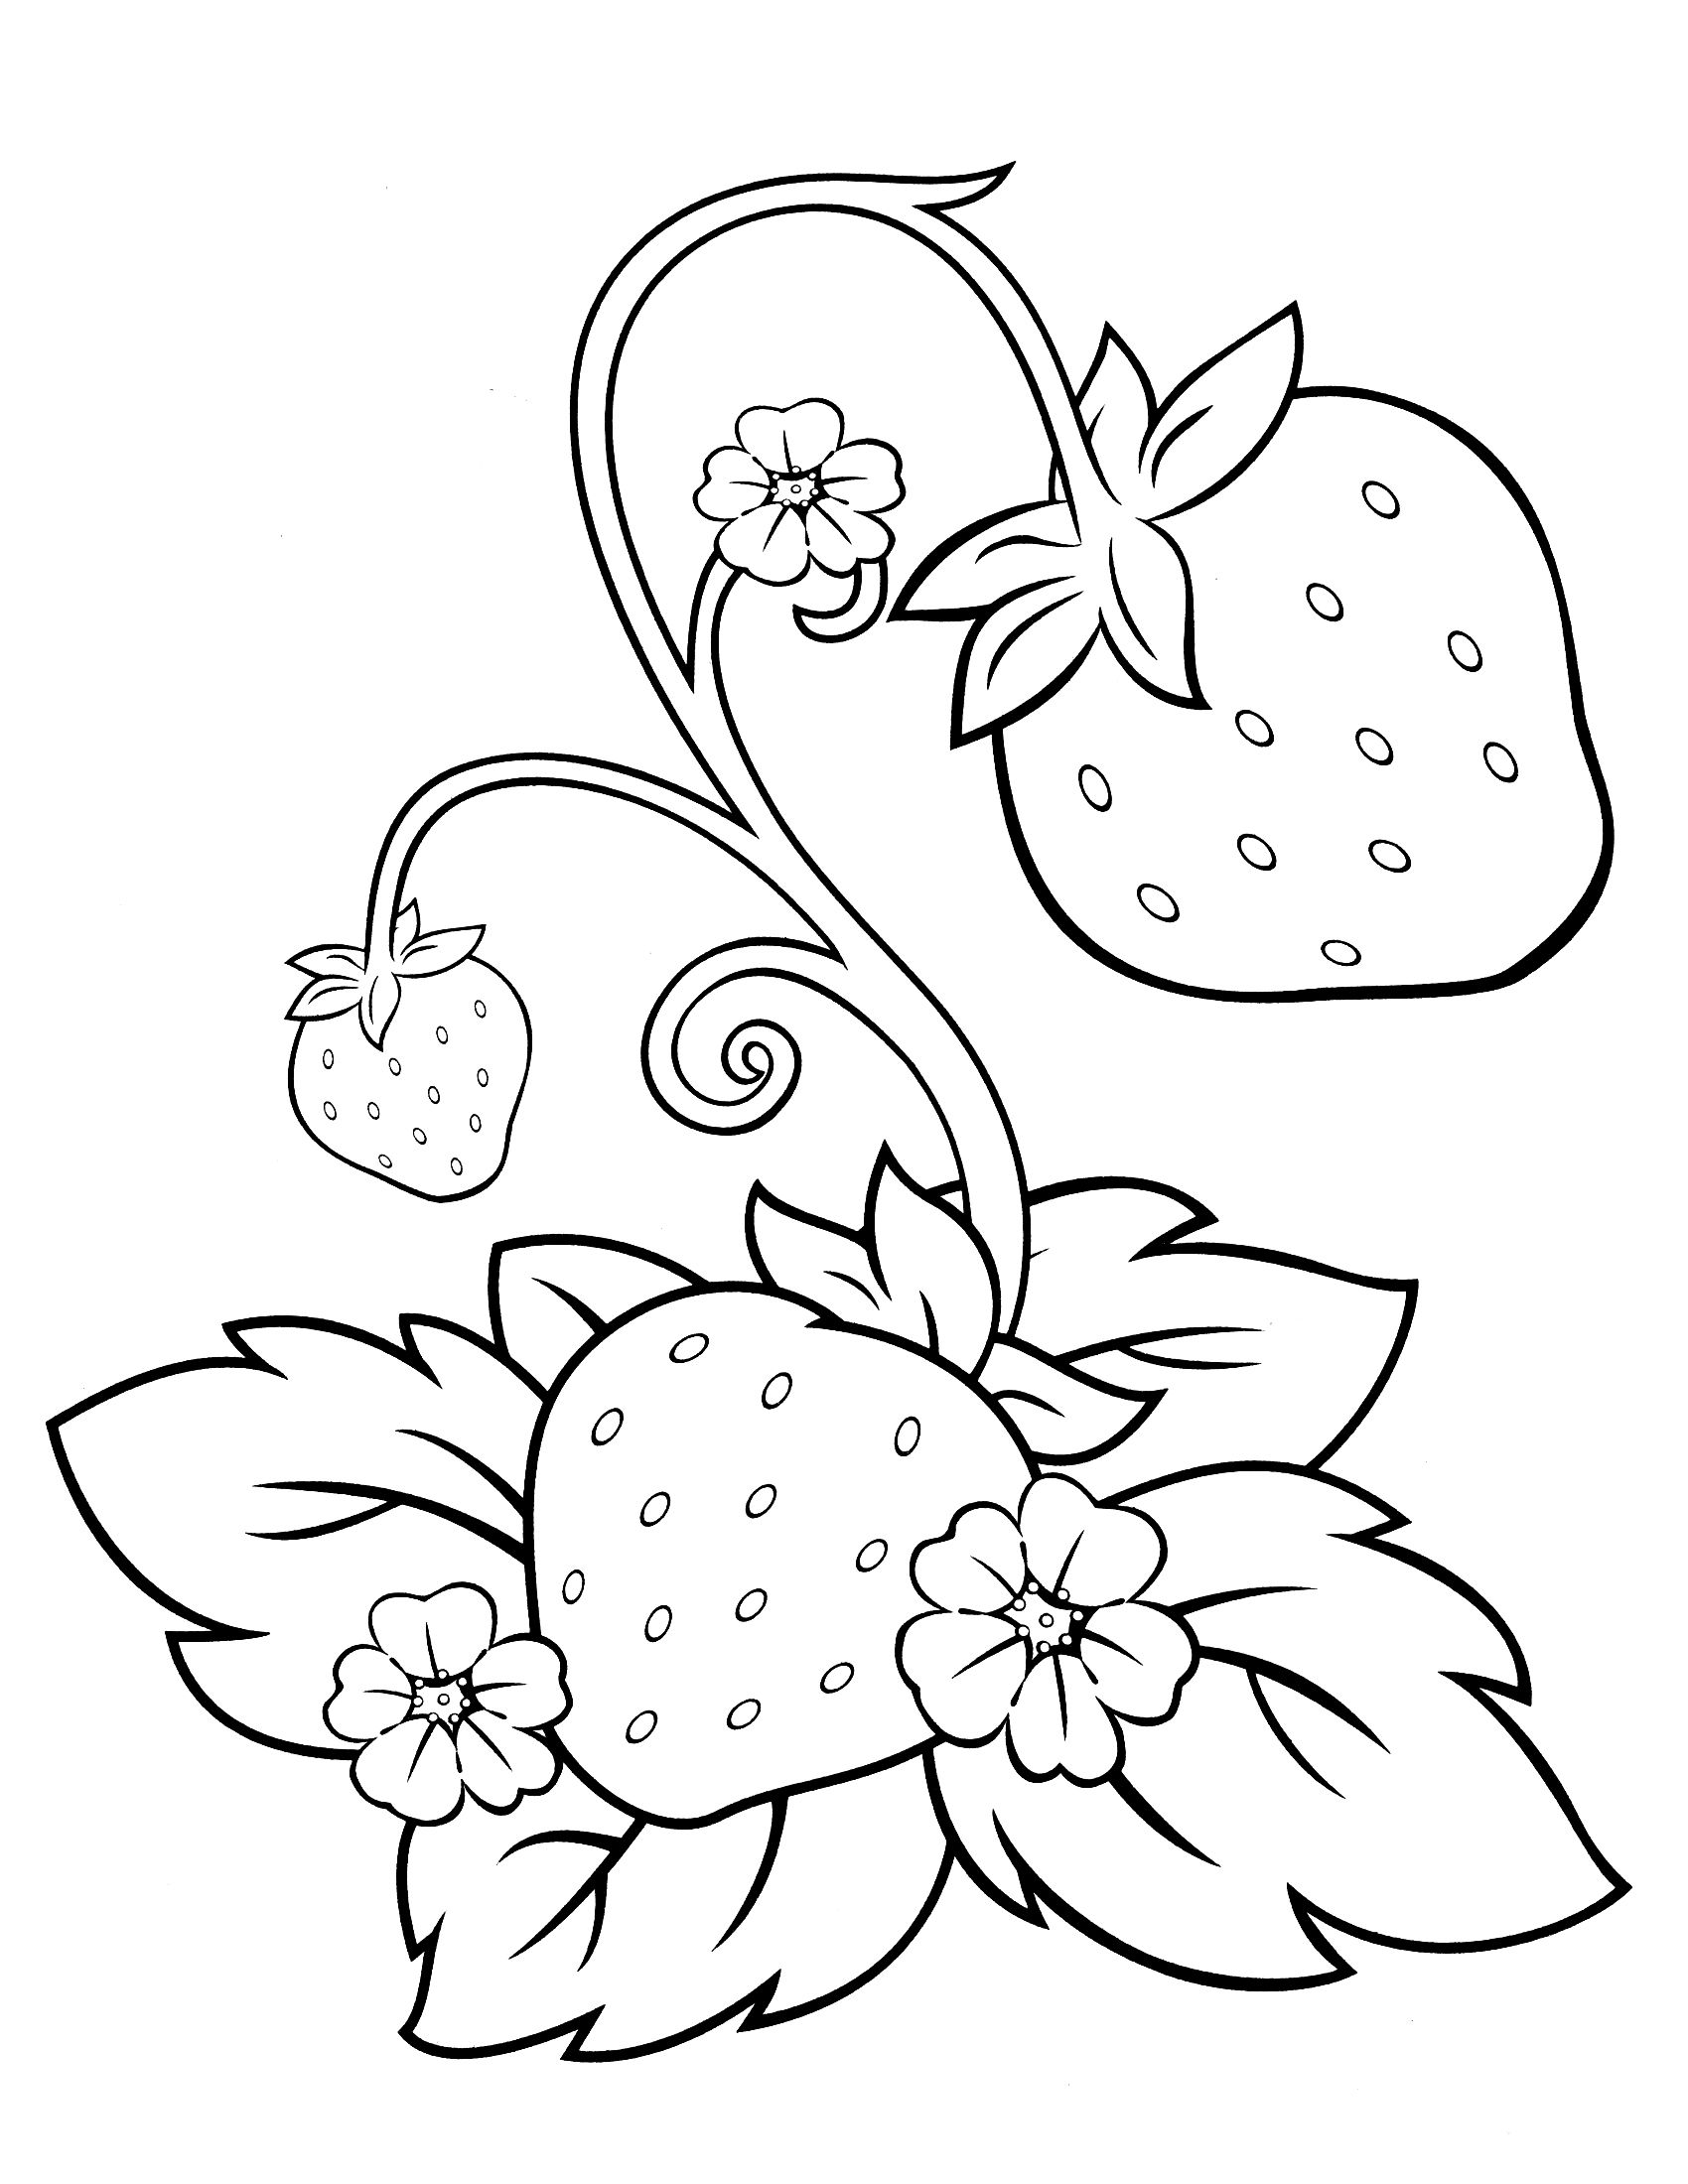 Strawberry Shortcake 22 Fruit coloring pages Coloring